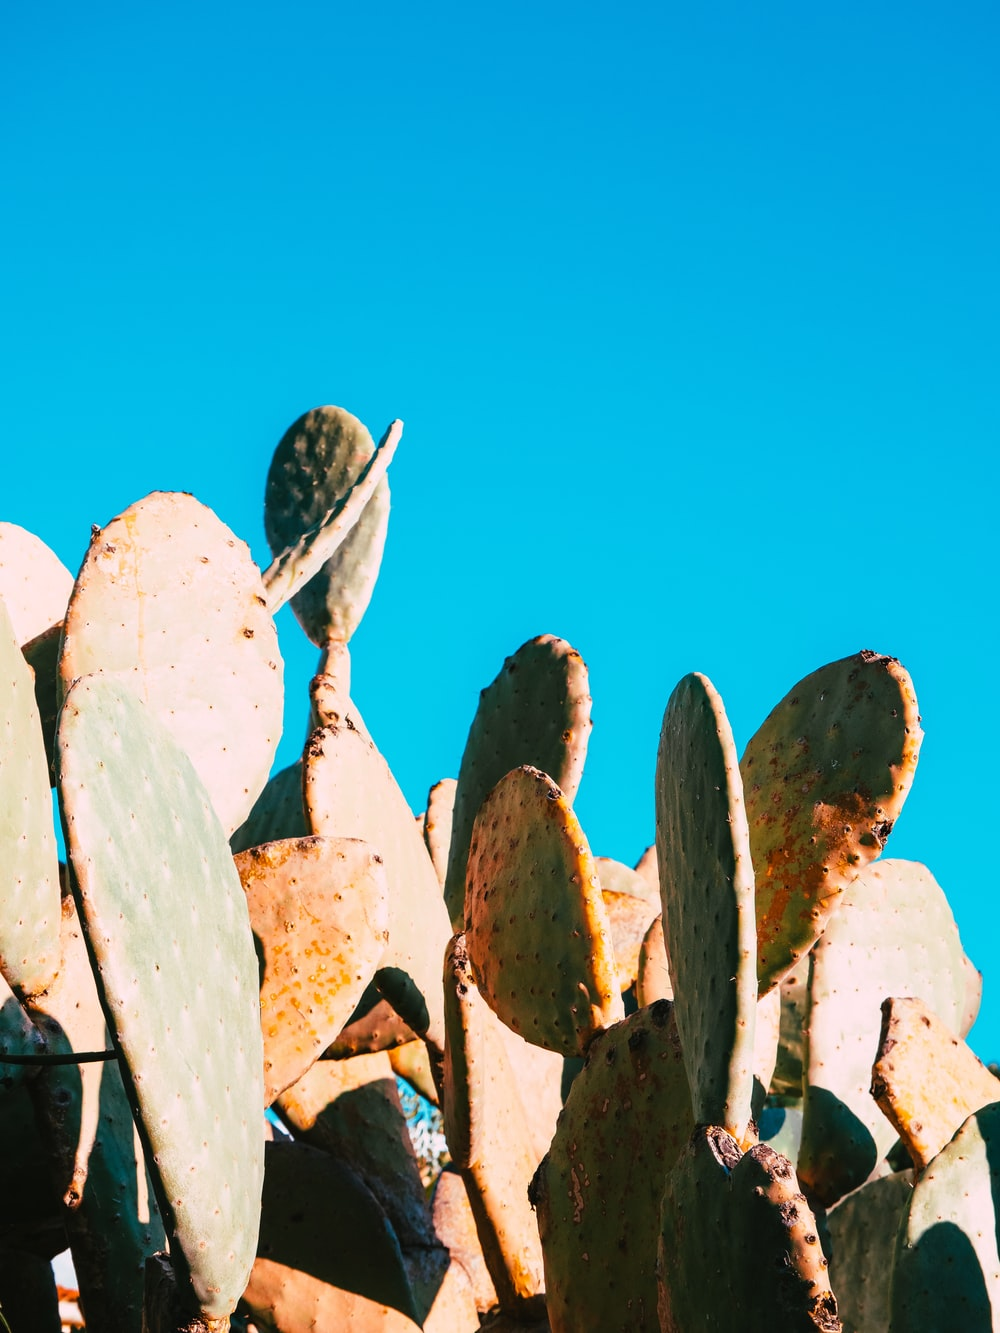 brown and white rocks under blue sky during daytime